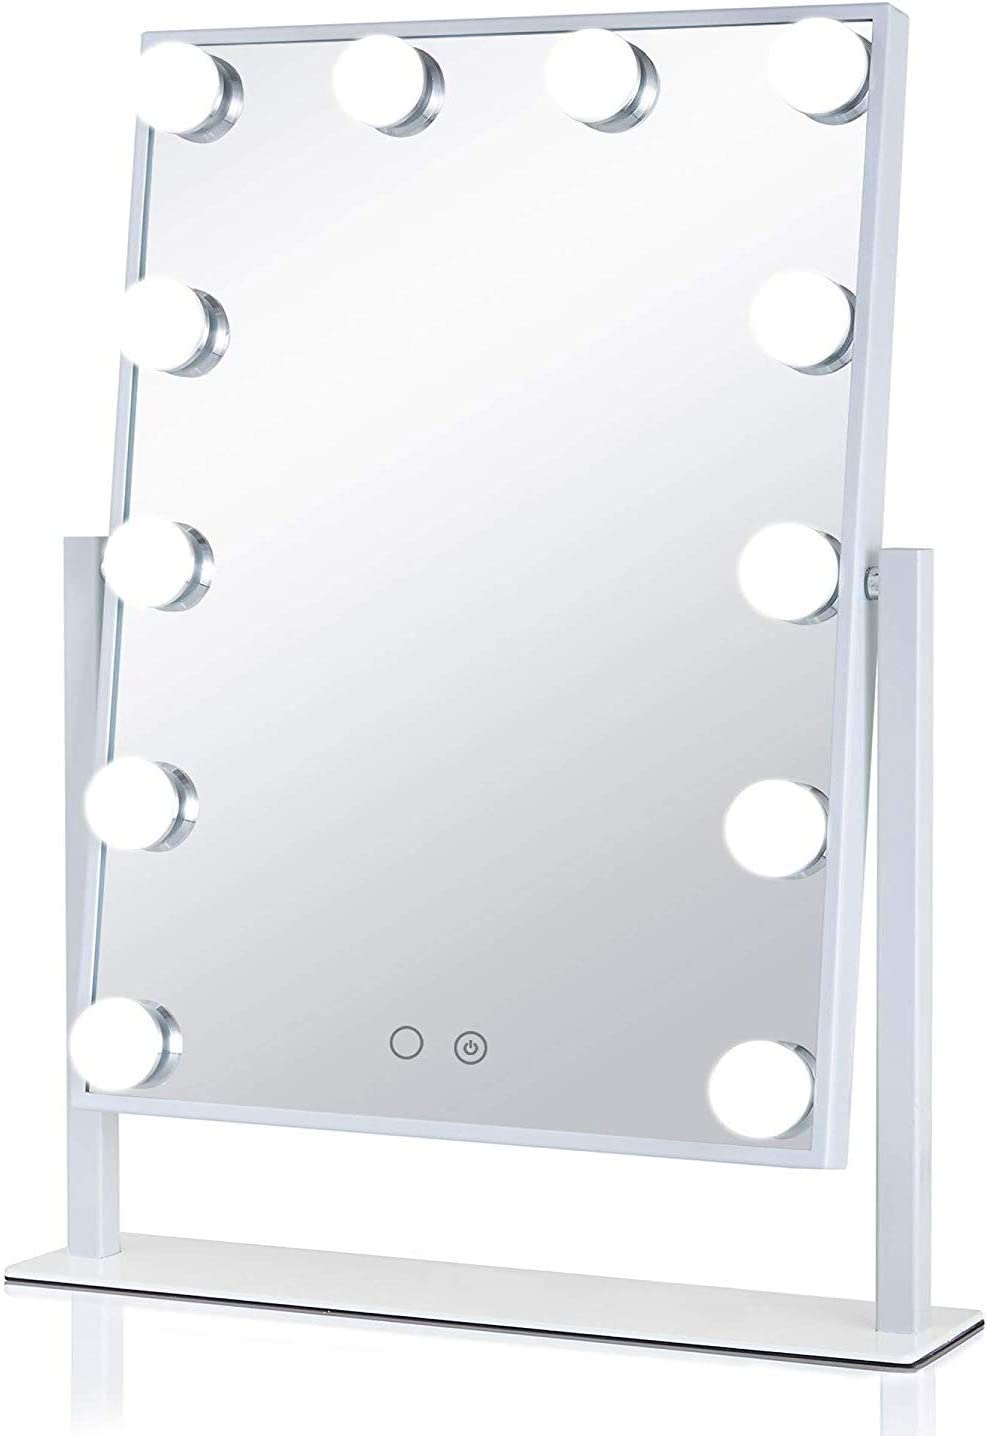 4-Light Nickel Vanity Fixture – LED Bathroom Lamp, Textured Linen Glass, Hardwire, Damp Located, Fully Dimmable – ETL Listed